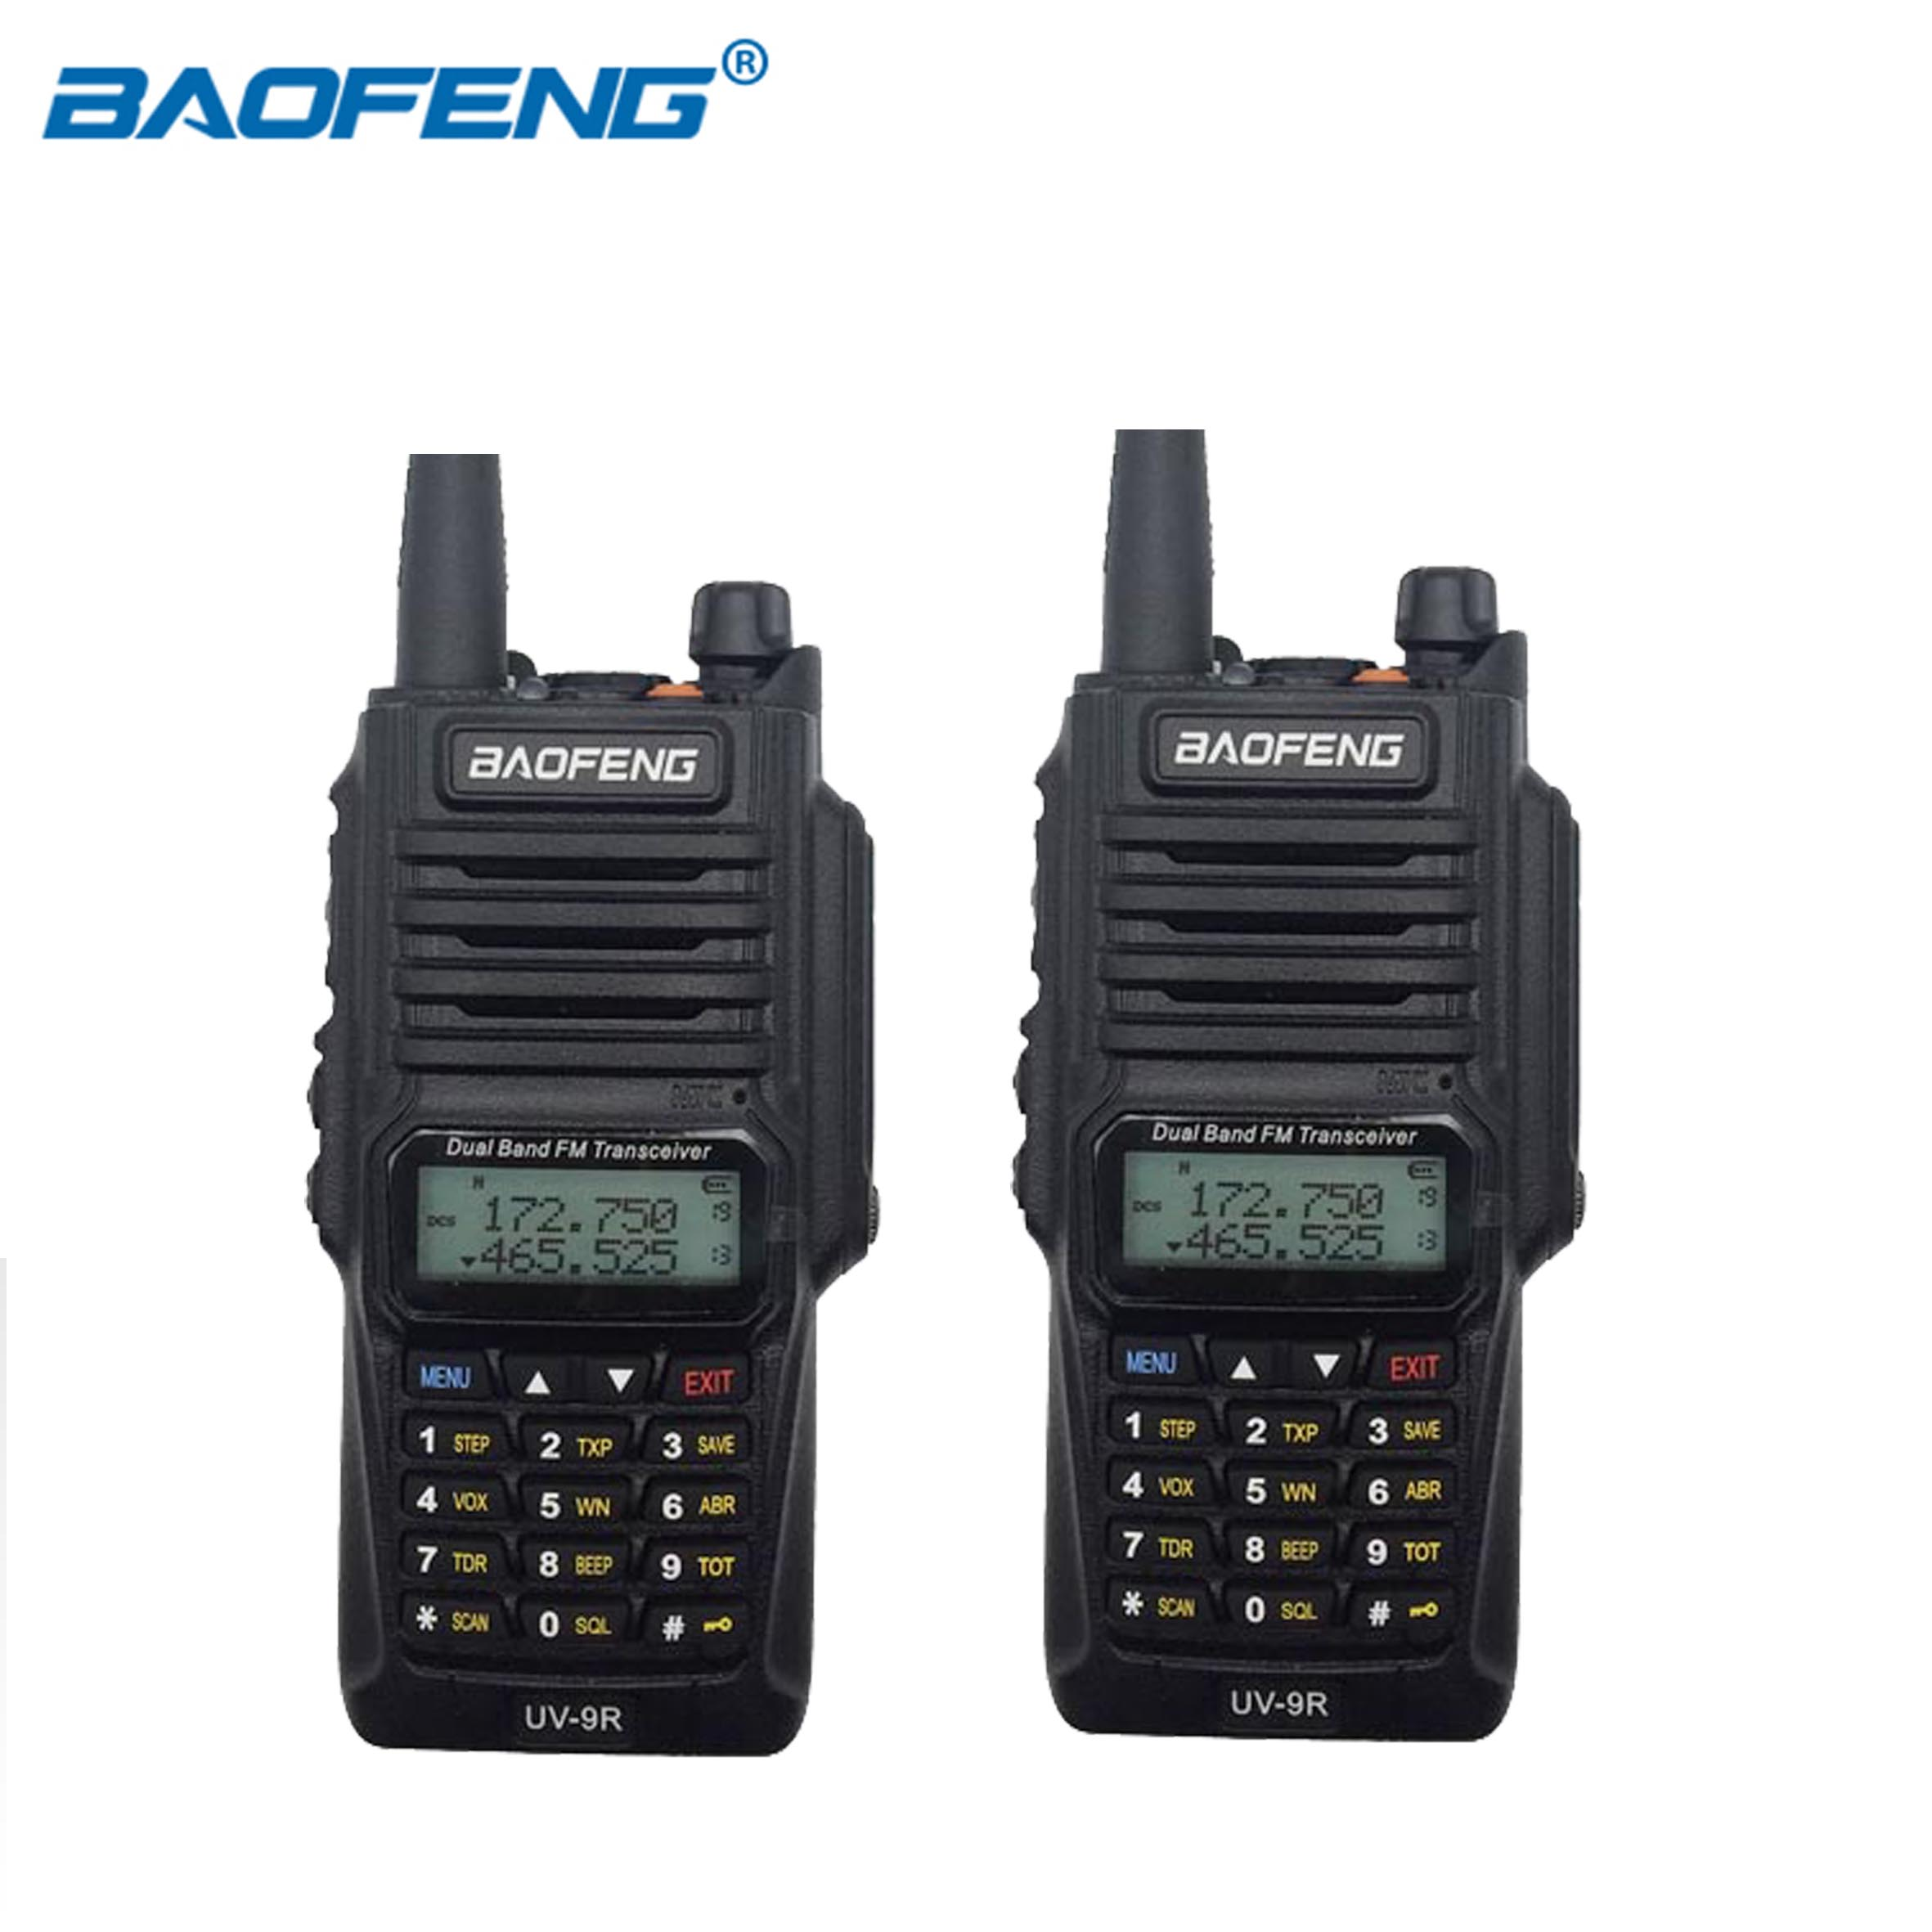 Original Baofeng UV 9R IP67 Radio bidirectionnelle UHF VHF double bande étanche talkie walkie 8W 128CH UV 9R jambon chasse Radio FM 2 pièces-in Talkie Walkie from Téléphones portables et télécommunications on AliExpress - 11.11_Double 11_Singles' Day 1